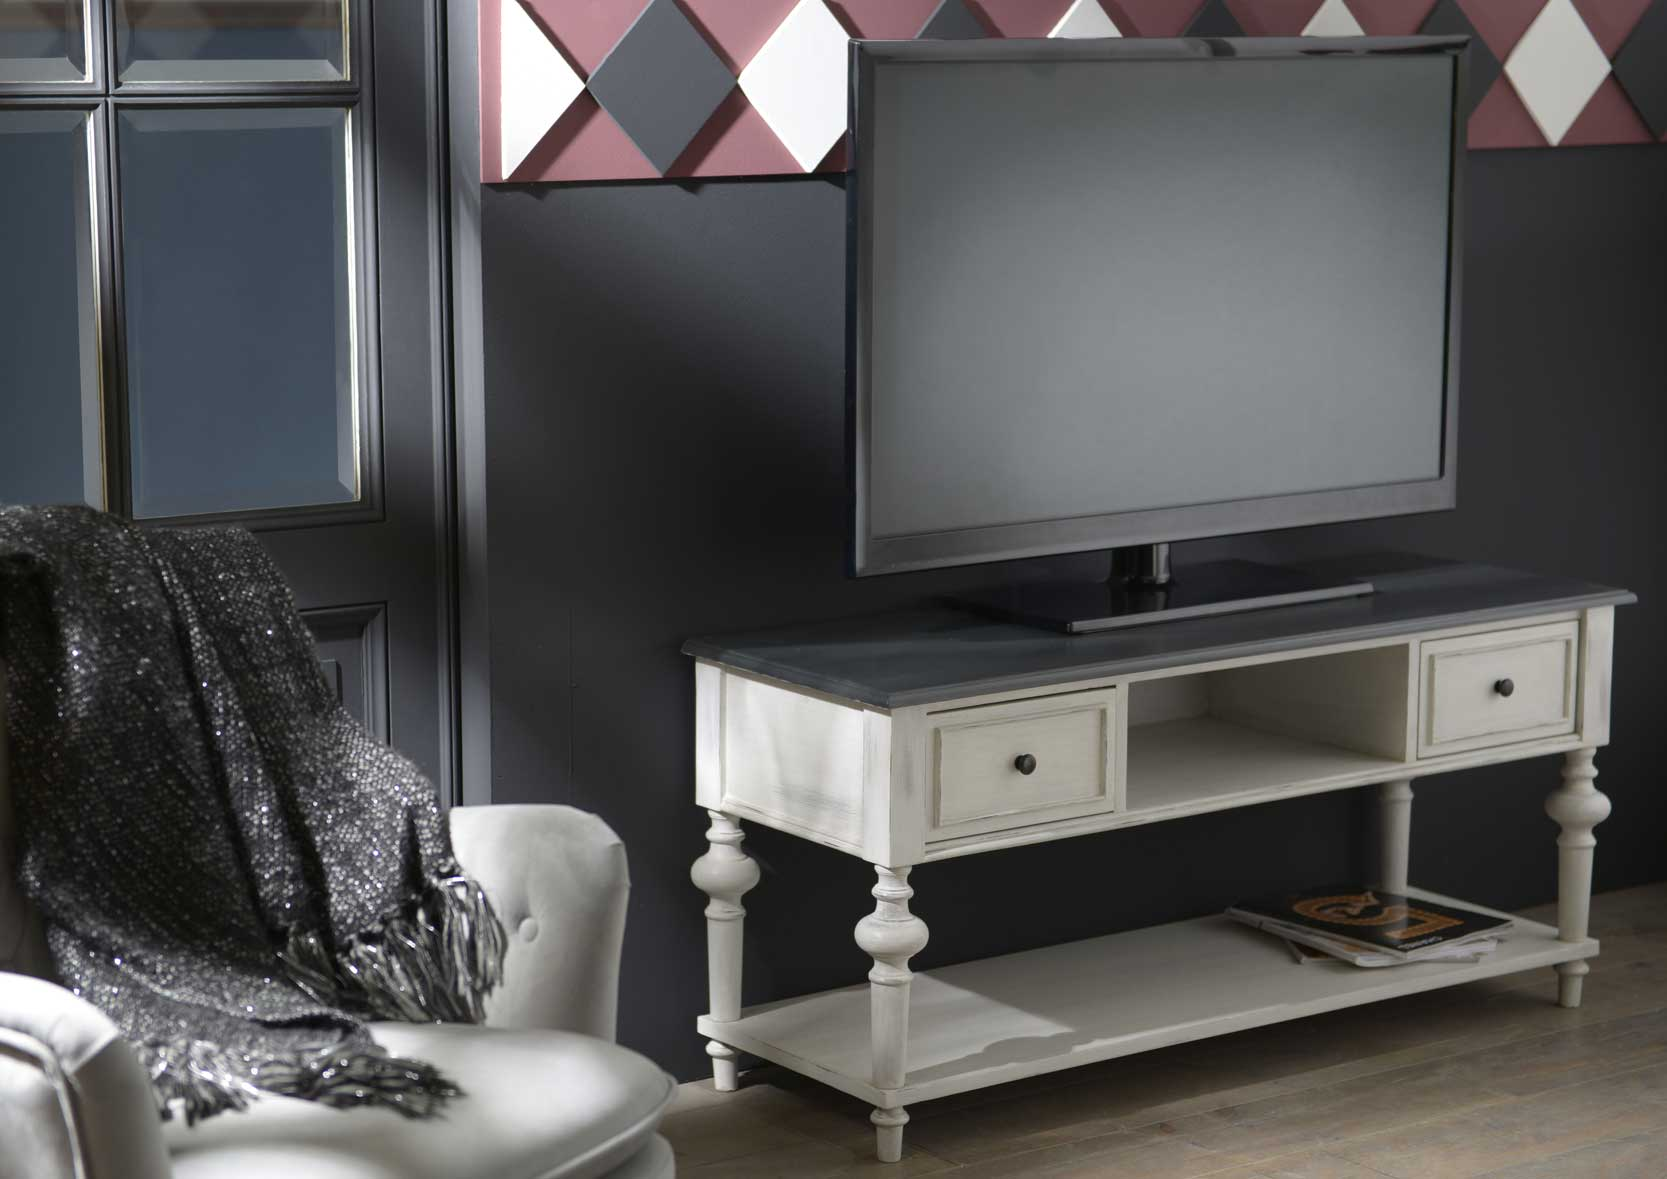 meuble tv h ritage amadeus 122692 10 magasin de meubles. Black Bedroom Furniture Sets. Home Design Ideas